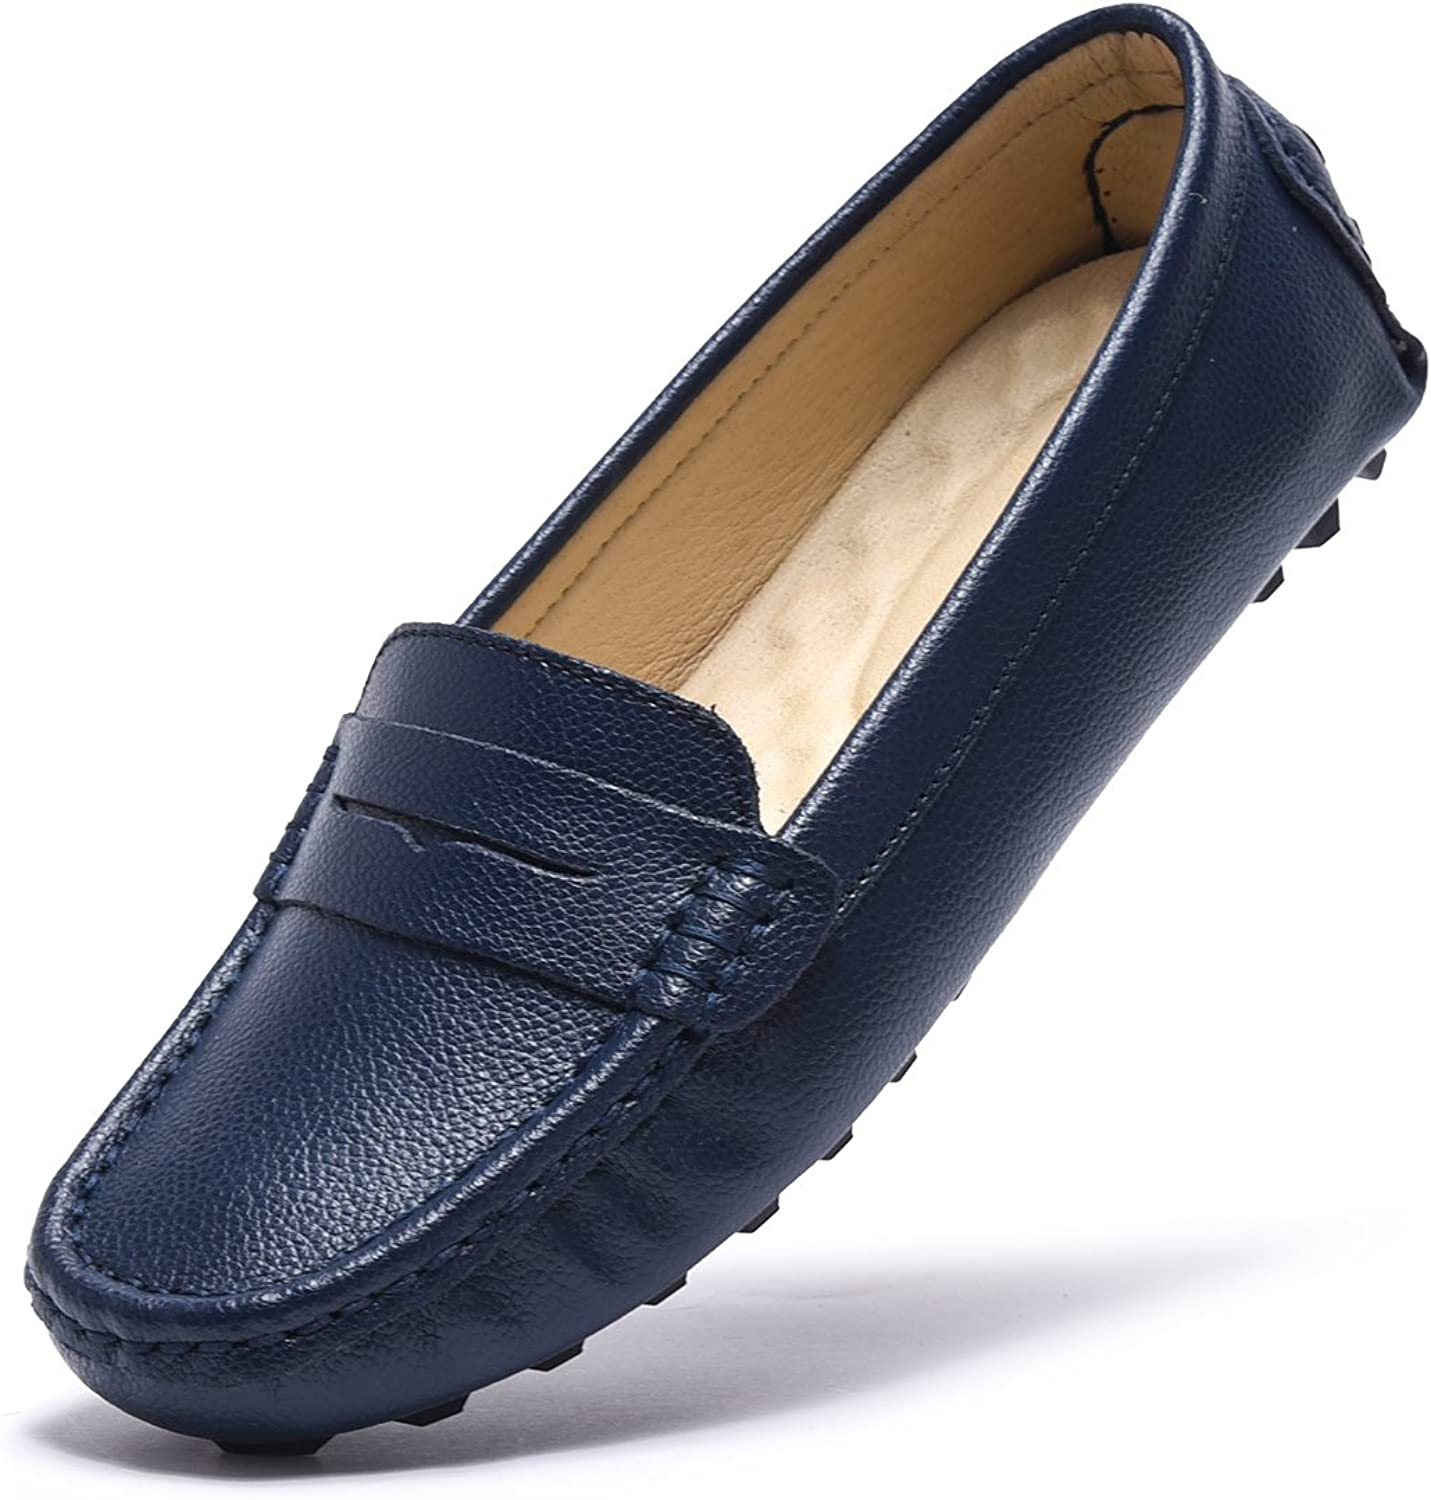 Artisure Women's Girls' Classic Handsewn bluee Genuine Leather Penny Loafers Driving Moccasins Casual Boat shoes Slip On Fashion Office Comfort Flats 11 M US SKS-1221LAN110